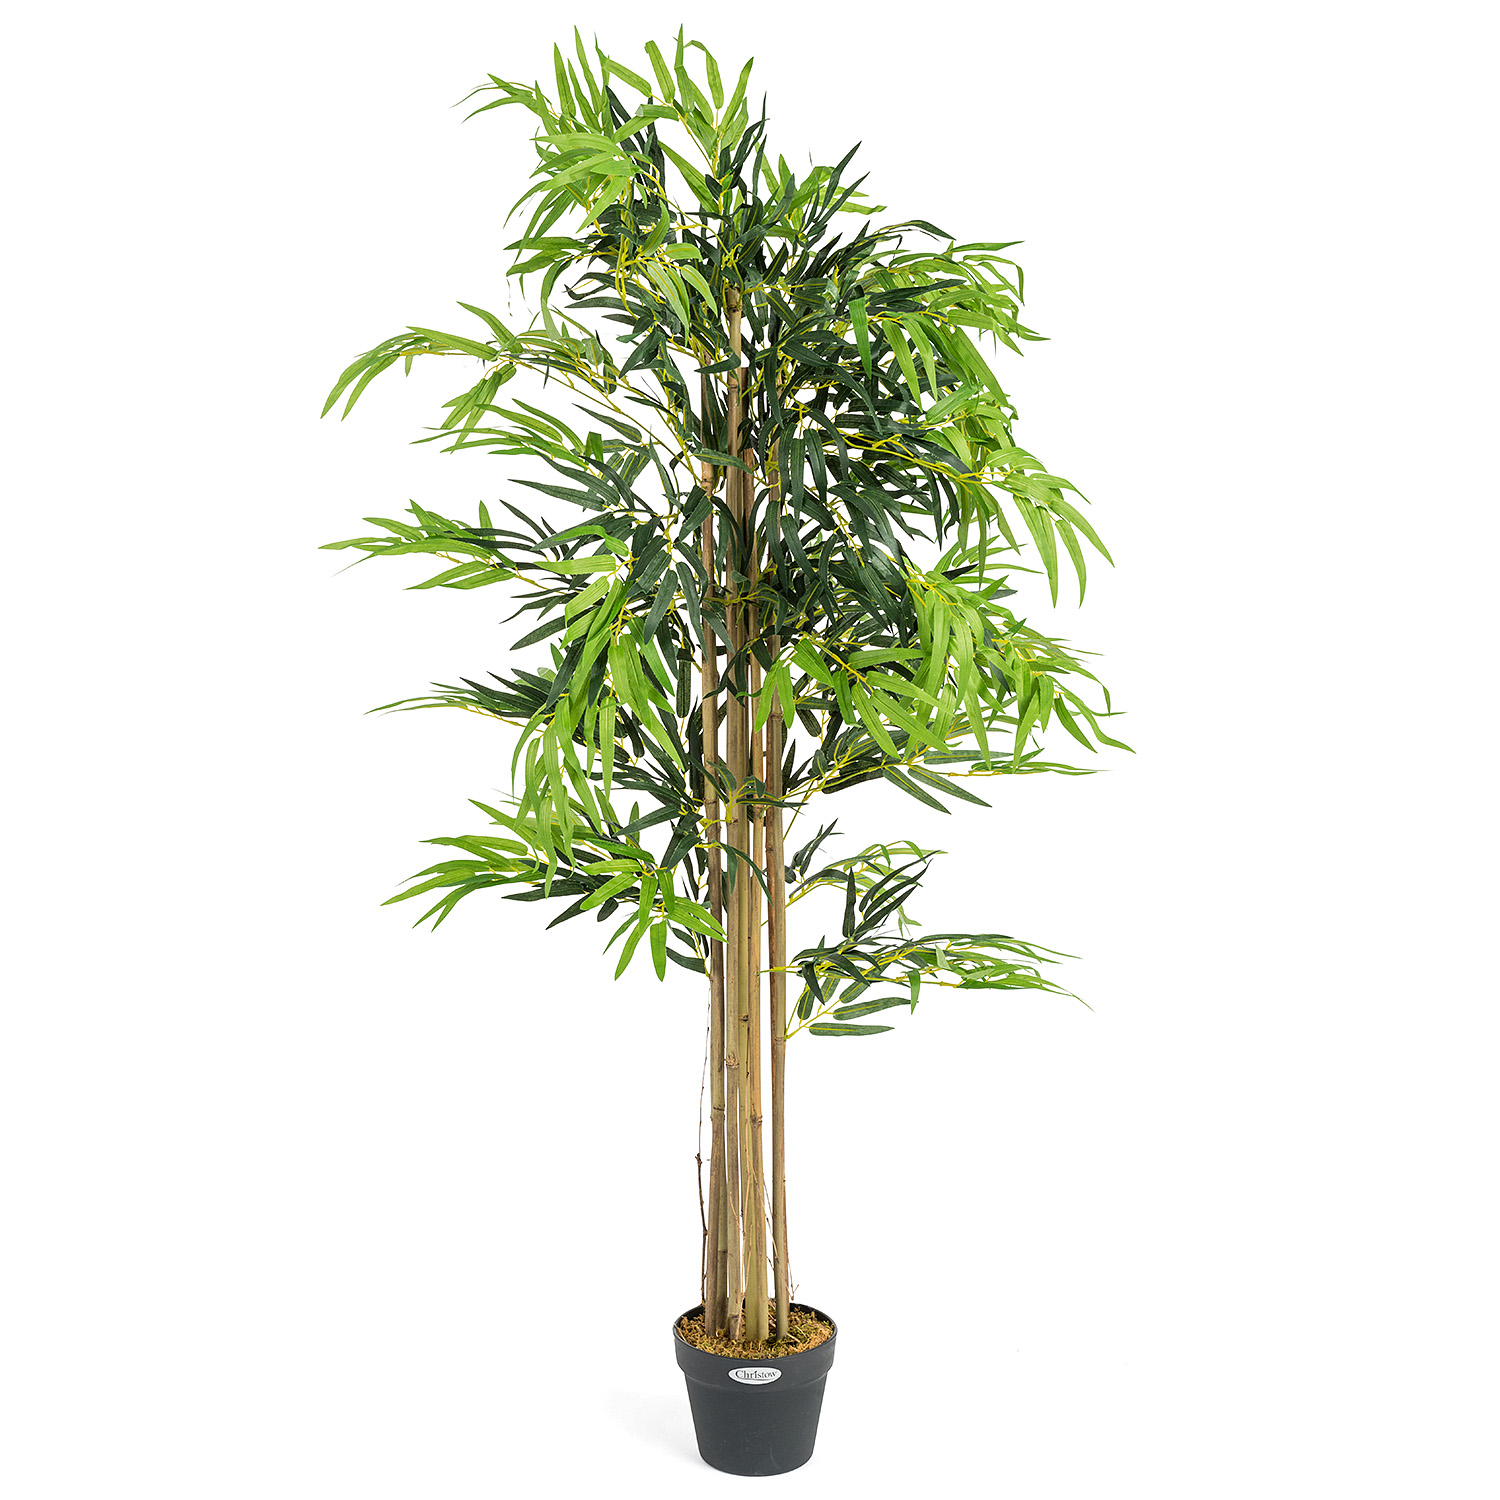 Image of Artificial Bamboo Plant - 5ft